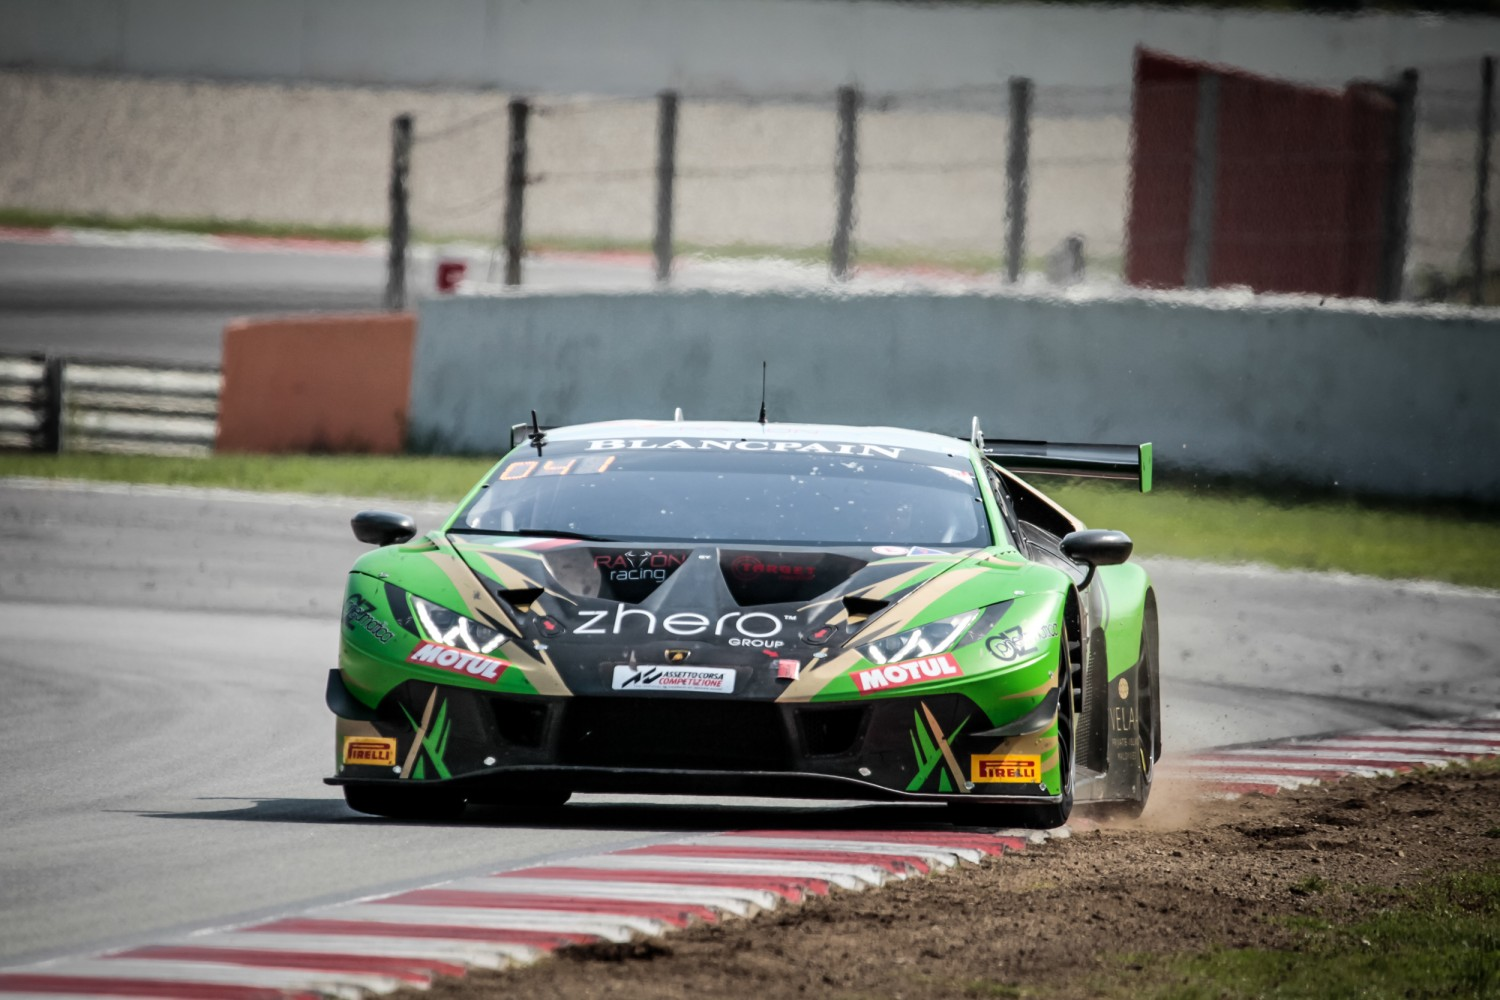 #29 Raton Racing by Target ITA Lamborghini Huracan GT3 2019 Stefano Costantini ITA Antonio Forne Tomas ESP Christoph Lenz CHE Am Cup, Friday Sessions  | SRO / Patrick Hecq Photography